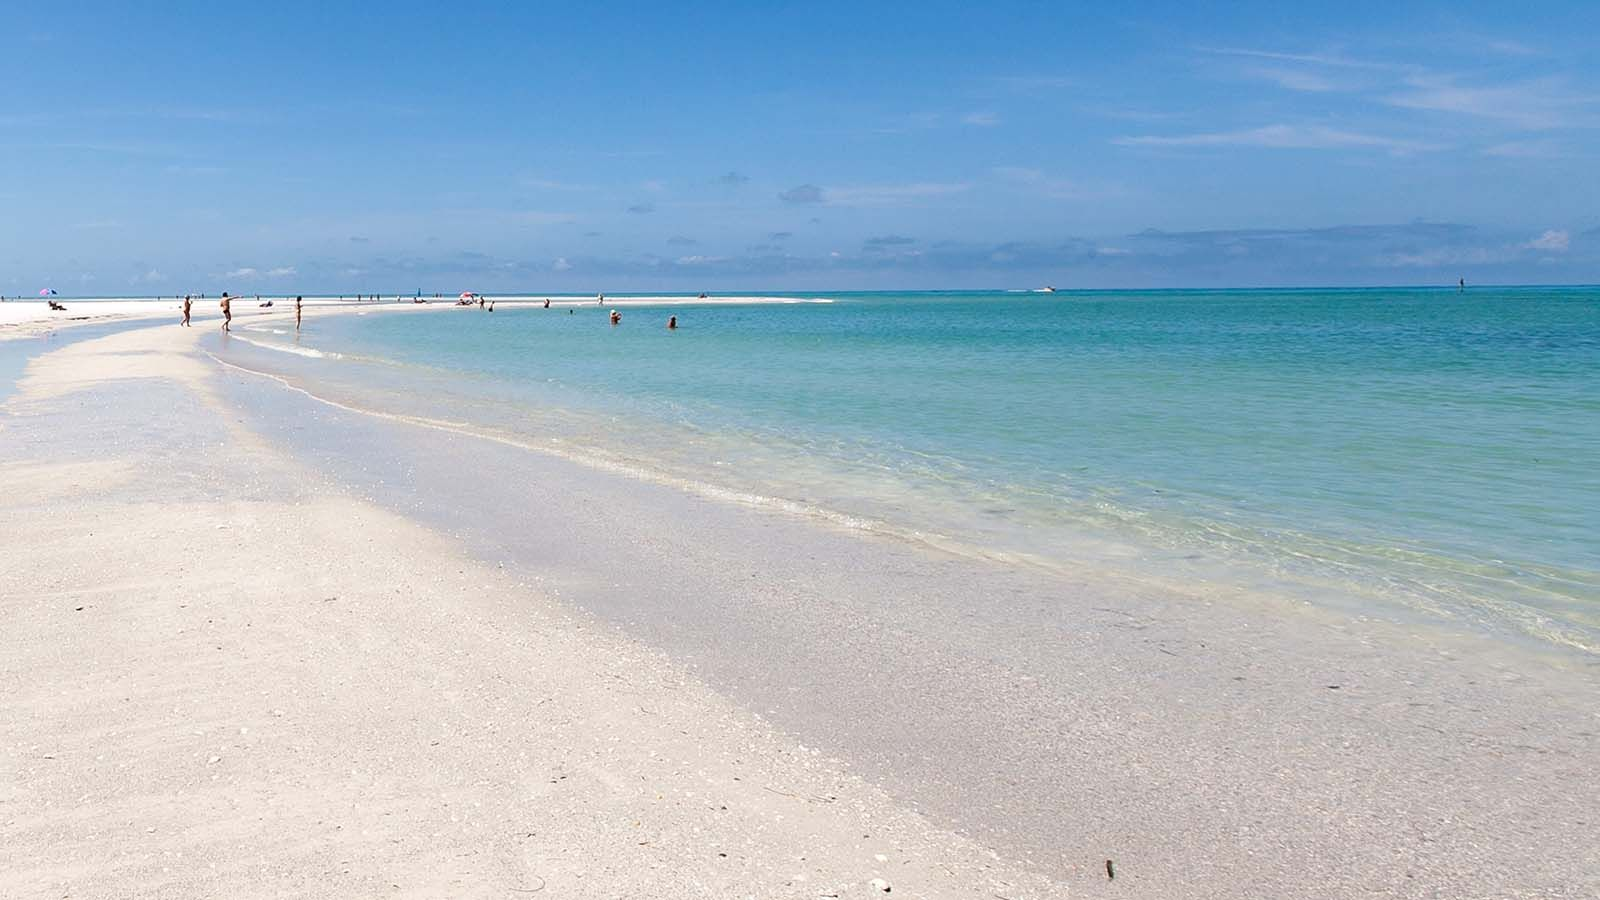 Tropical Breeze Resort Is The Premier Hotel On Siesta Key Fl Stay In Style Steps Away From Famous Beach And Village